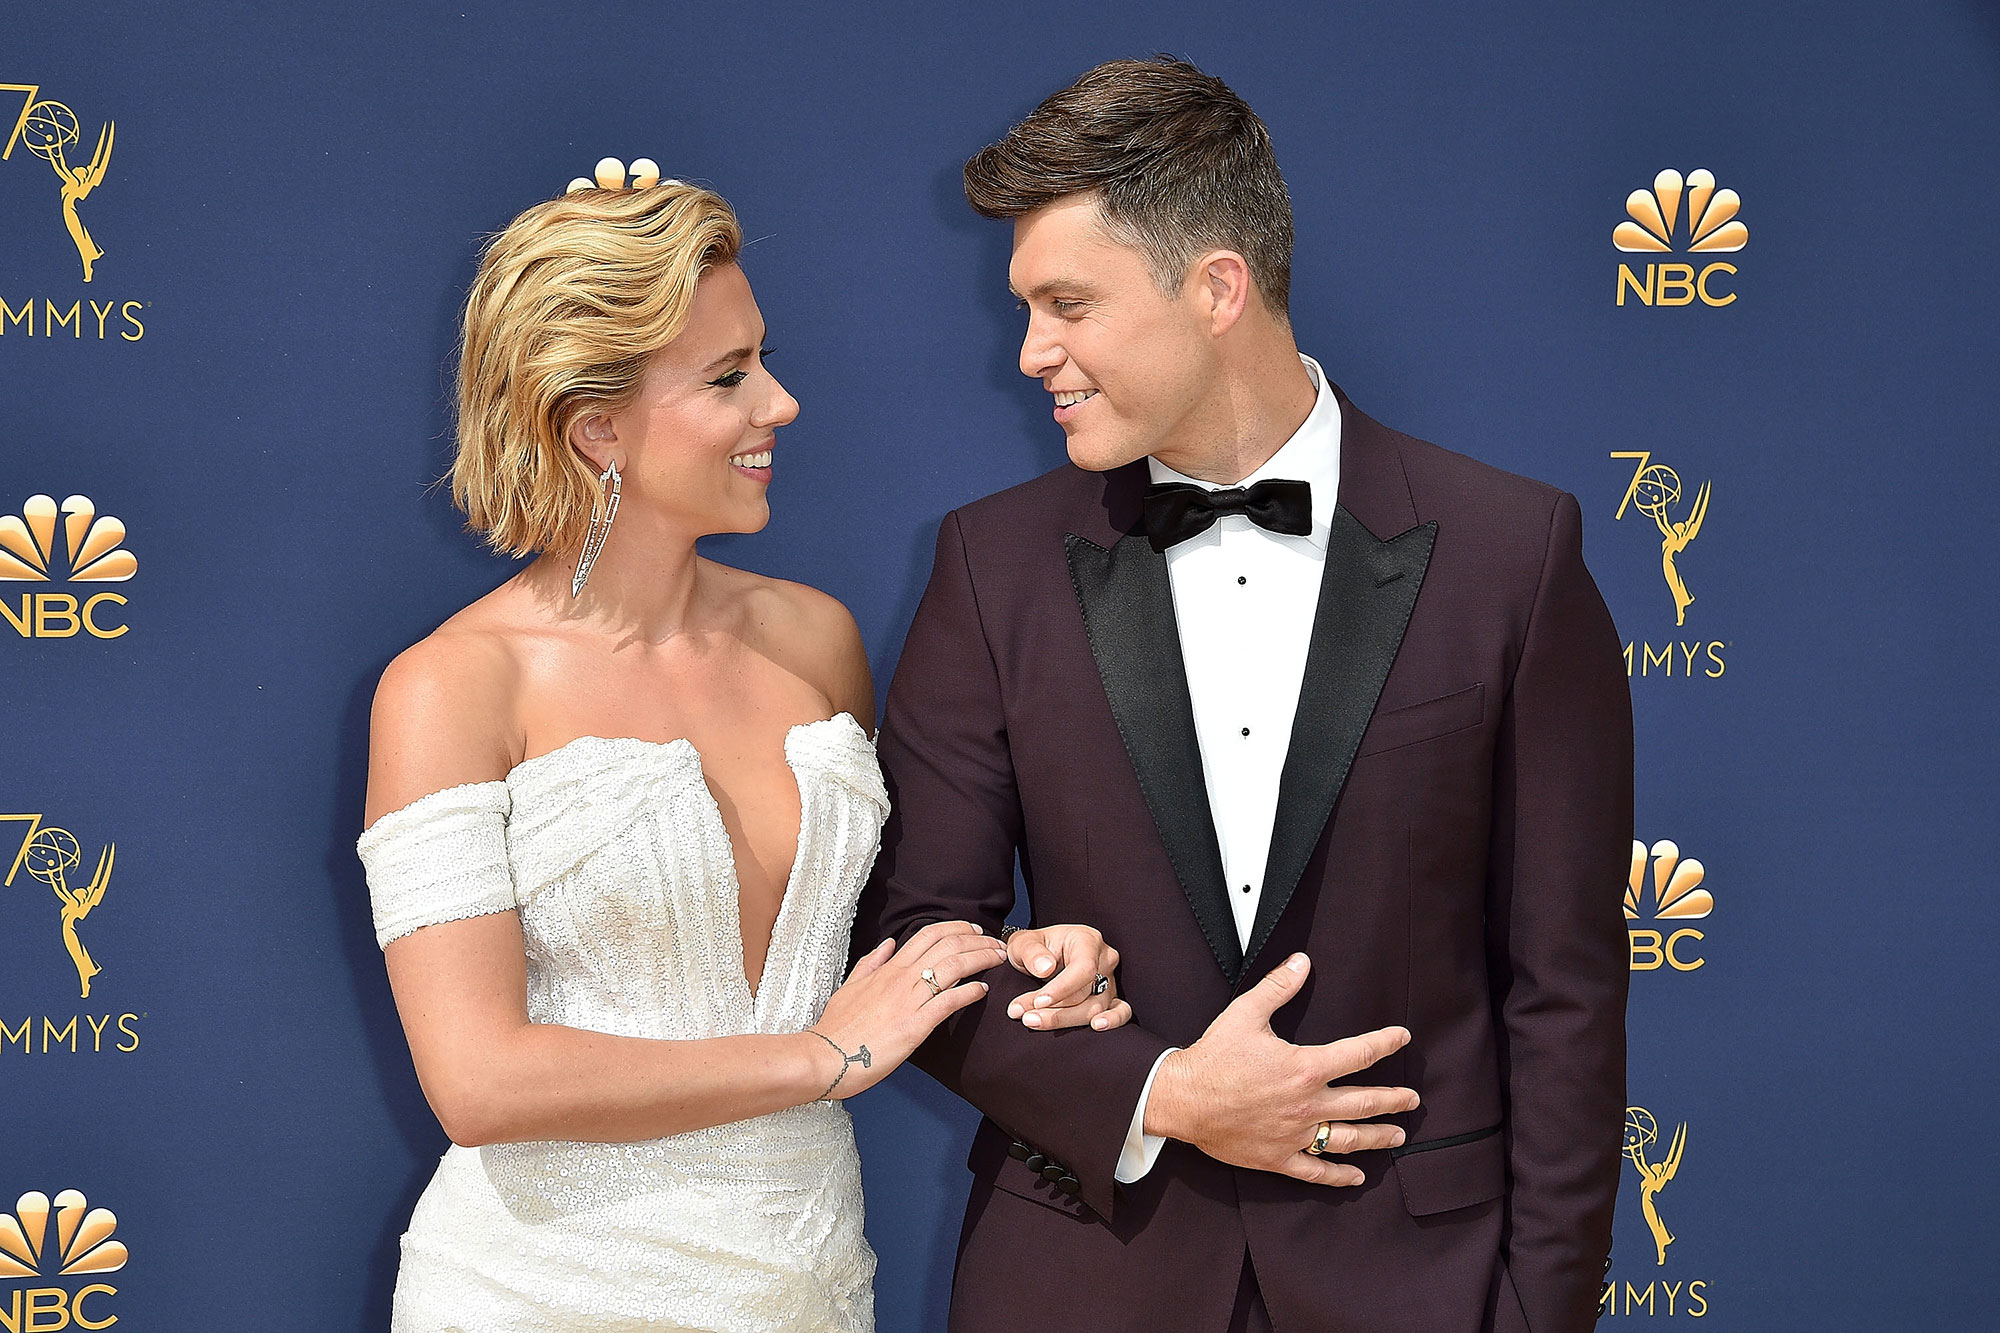 """Scarlett Johansson and Colin Jost Relationship Timeline Emmys - The Lost in Translation star and the Staten Island native were all smiles at the 70th Primetime Emmy Awards, which he cohosted with his """"Weekend Update"""" coanchor, Michael Che ."""